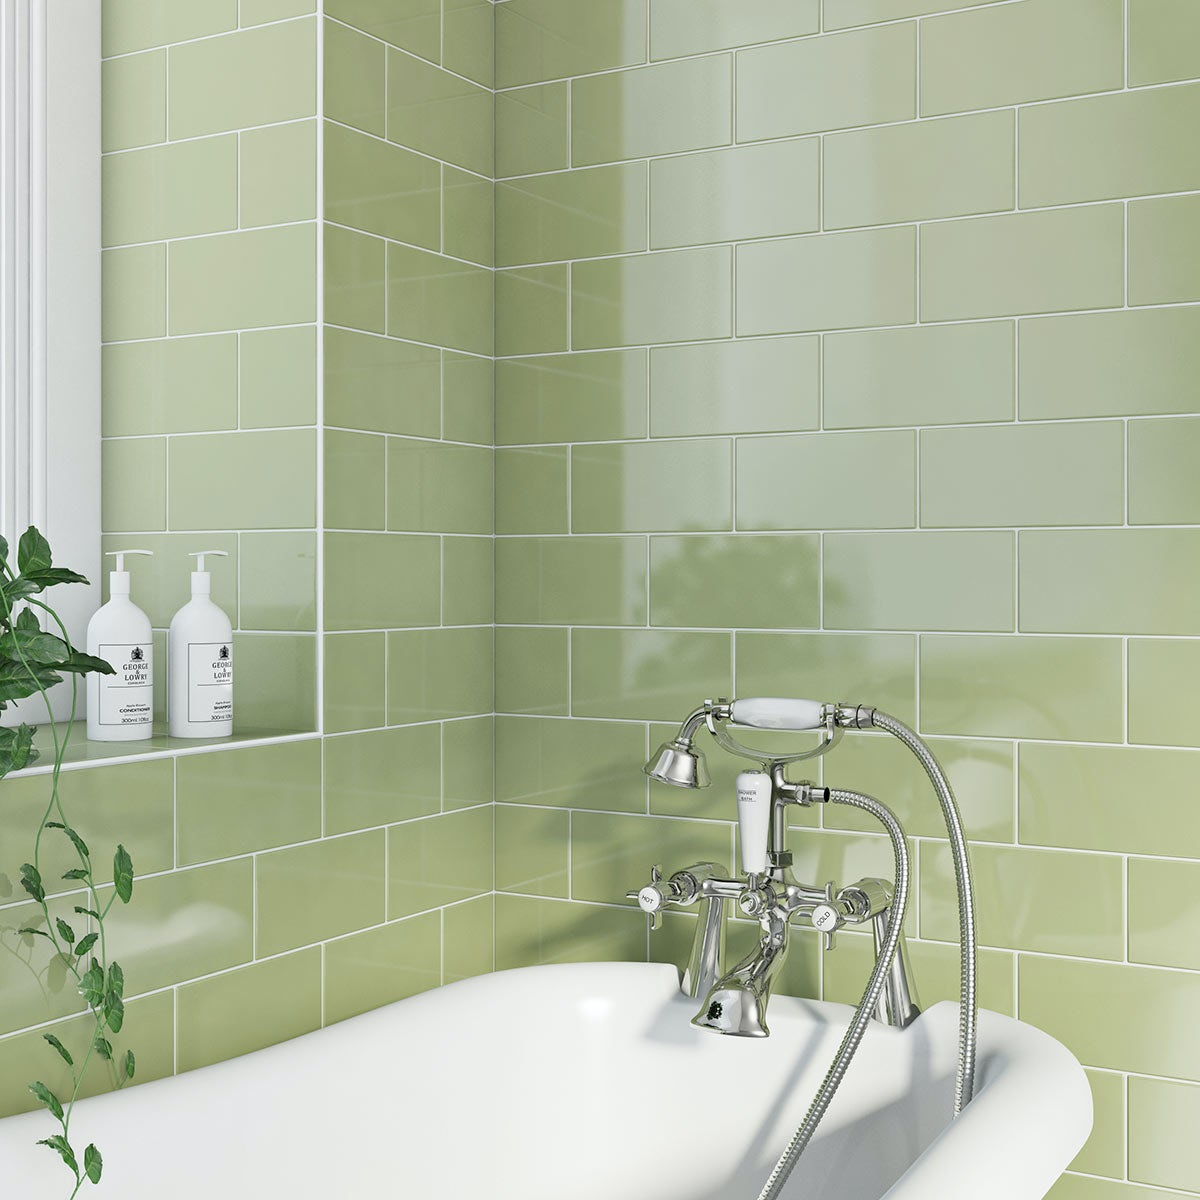 British Ceramic Tile Metro pistachio gloss 100mm x 200mm